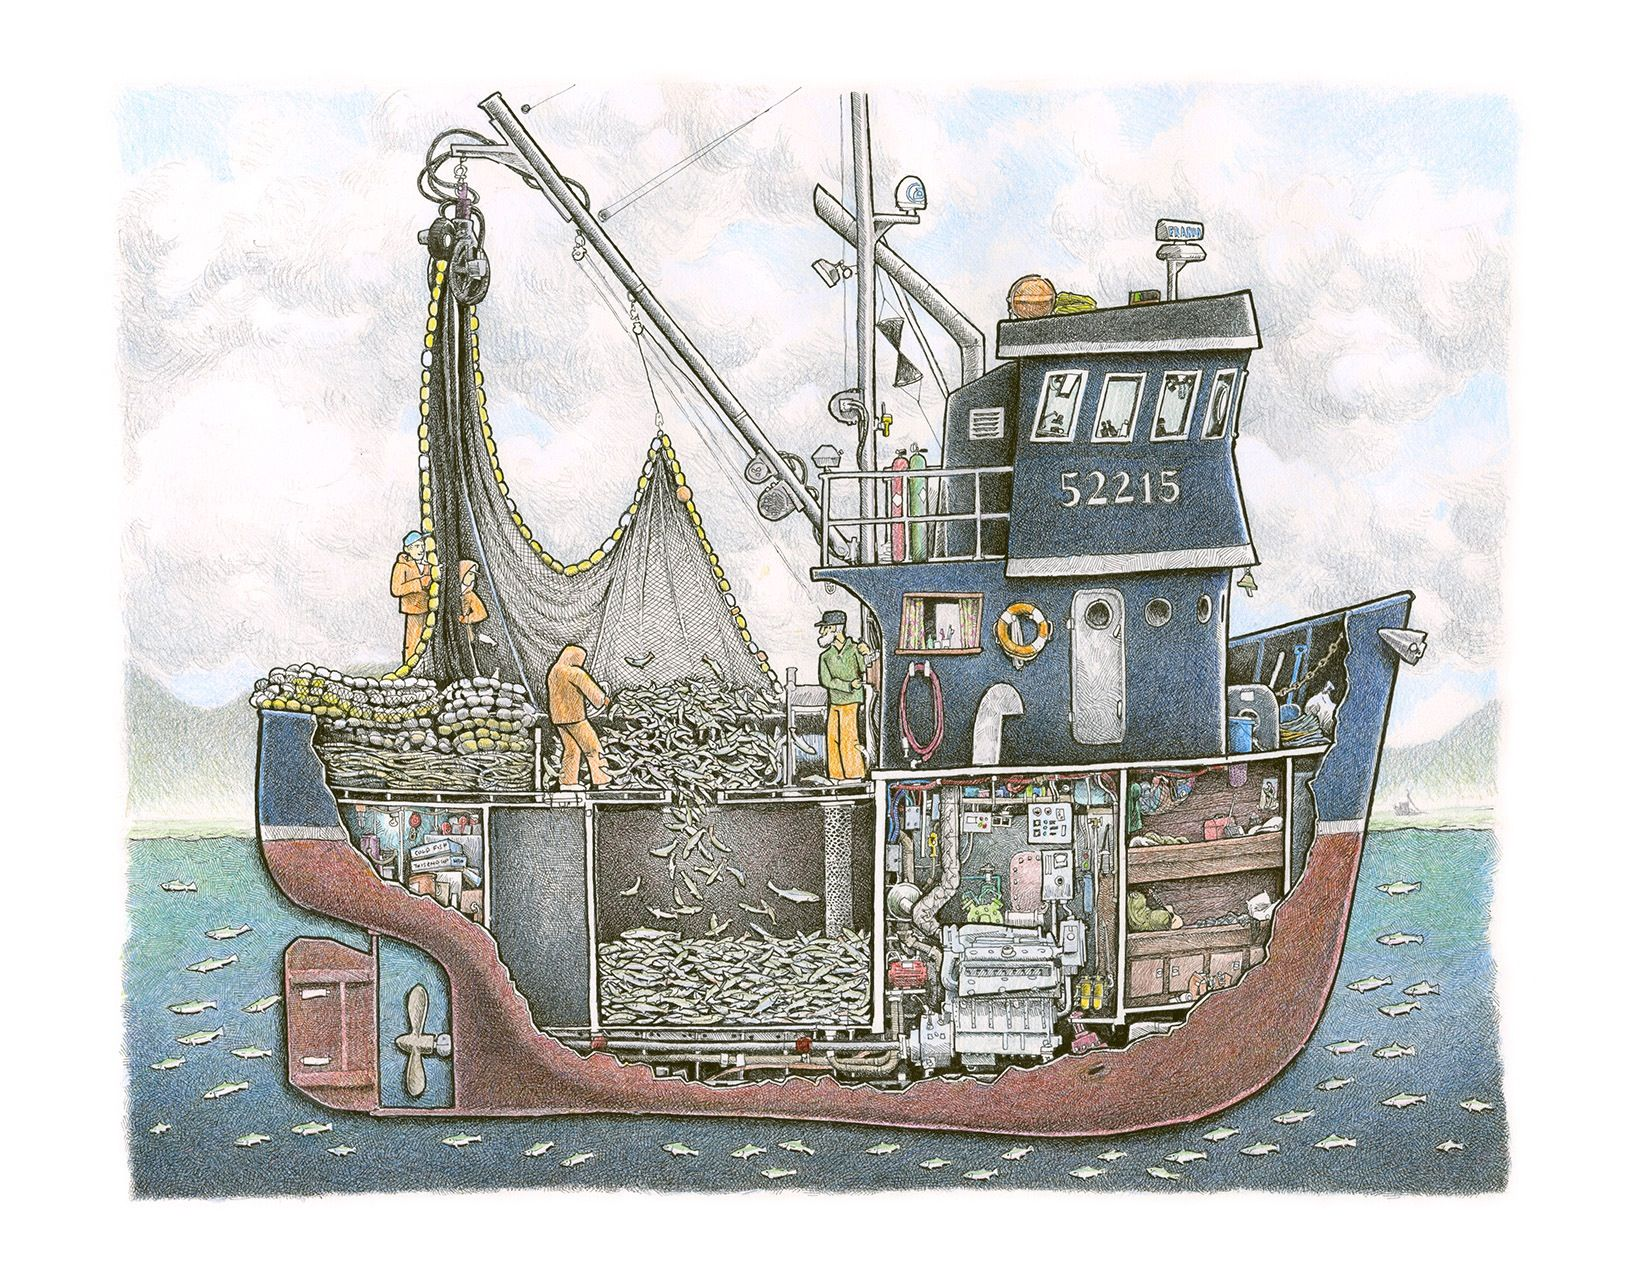 This is a classic steel salmon seiner hauling aboard a ...